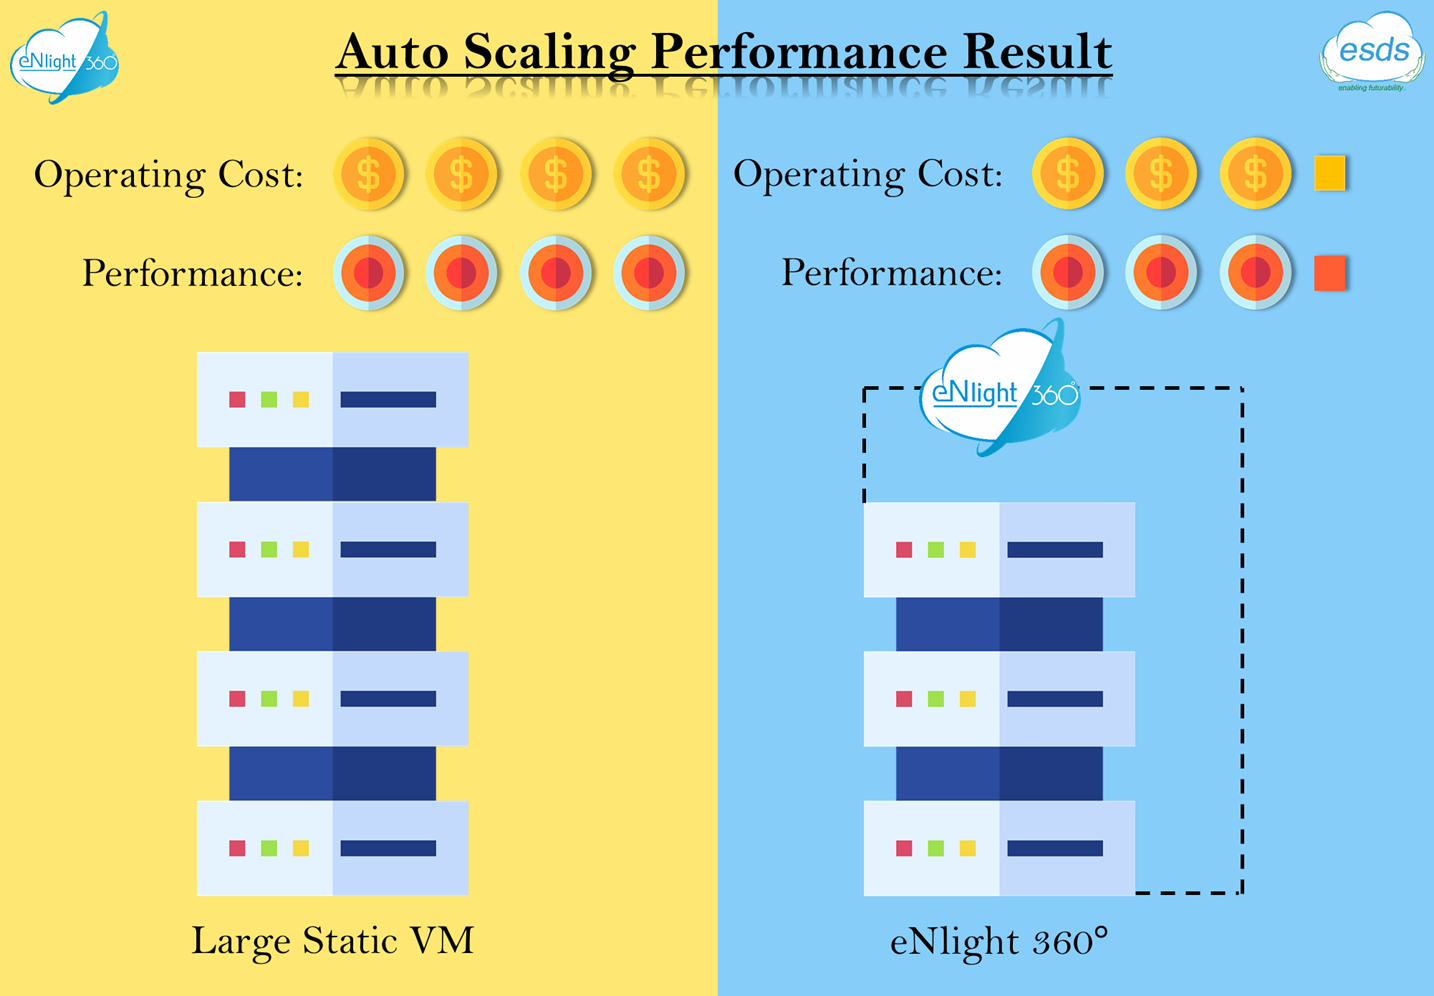 Auto Scaling Performance Result In 2020 Public Cloud Hybrid Cloud Generation